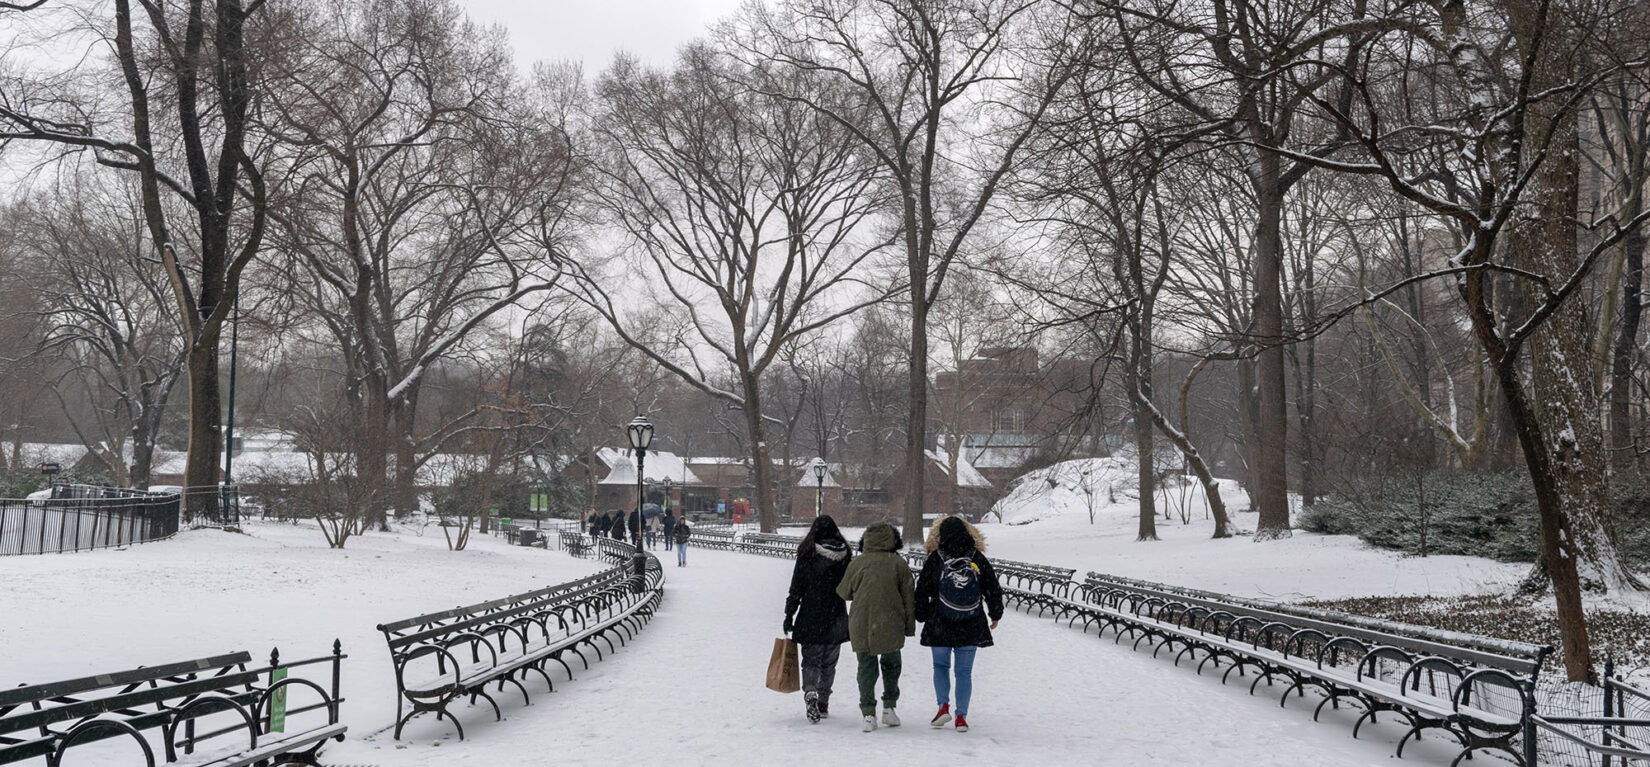 Three parkgoers bundled up for winter walk a snowcovered, bench-lined path in the Park